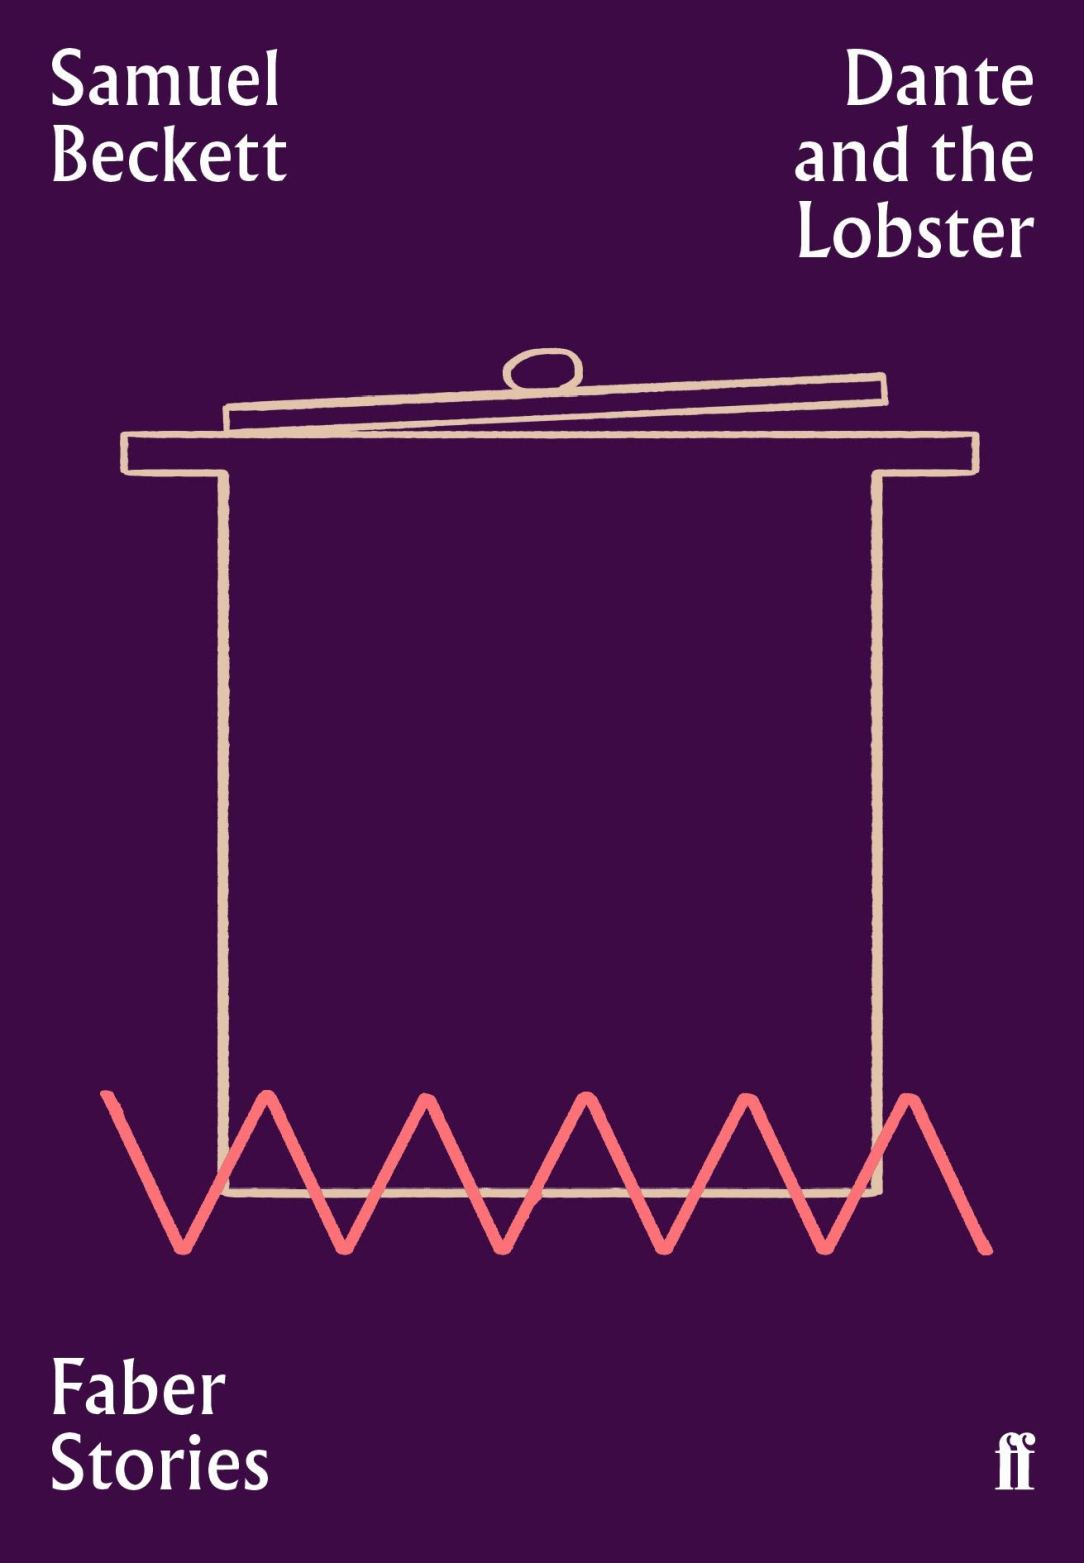 BOOK REVIEW: Dante and the Lobster by Samuel Beckett -